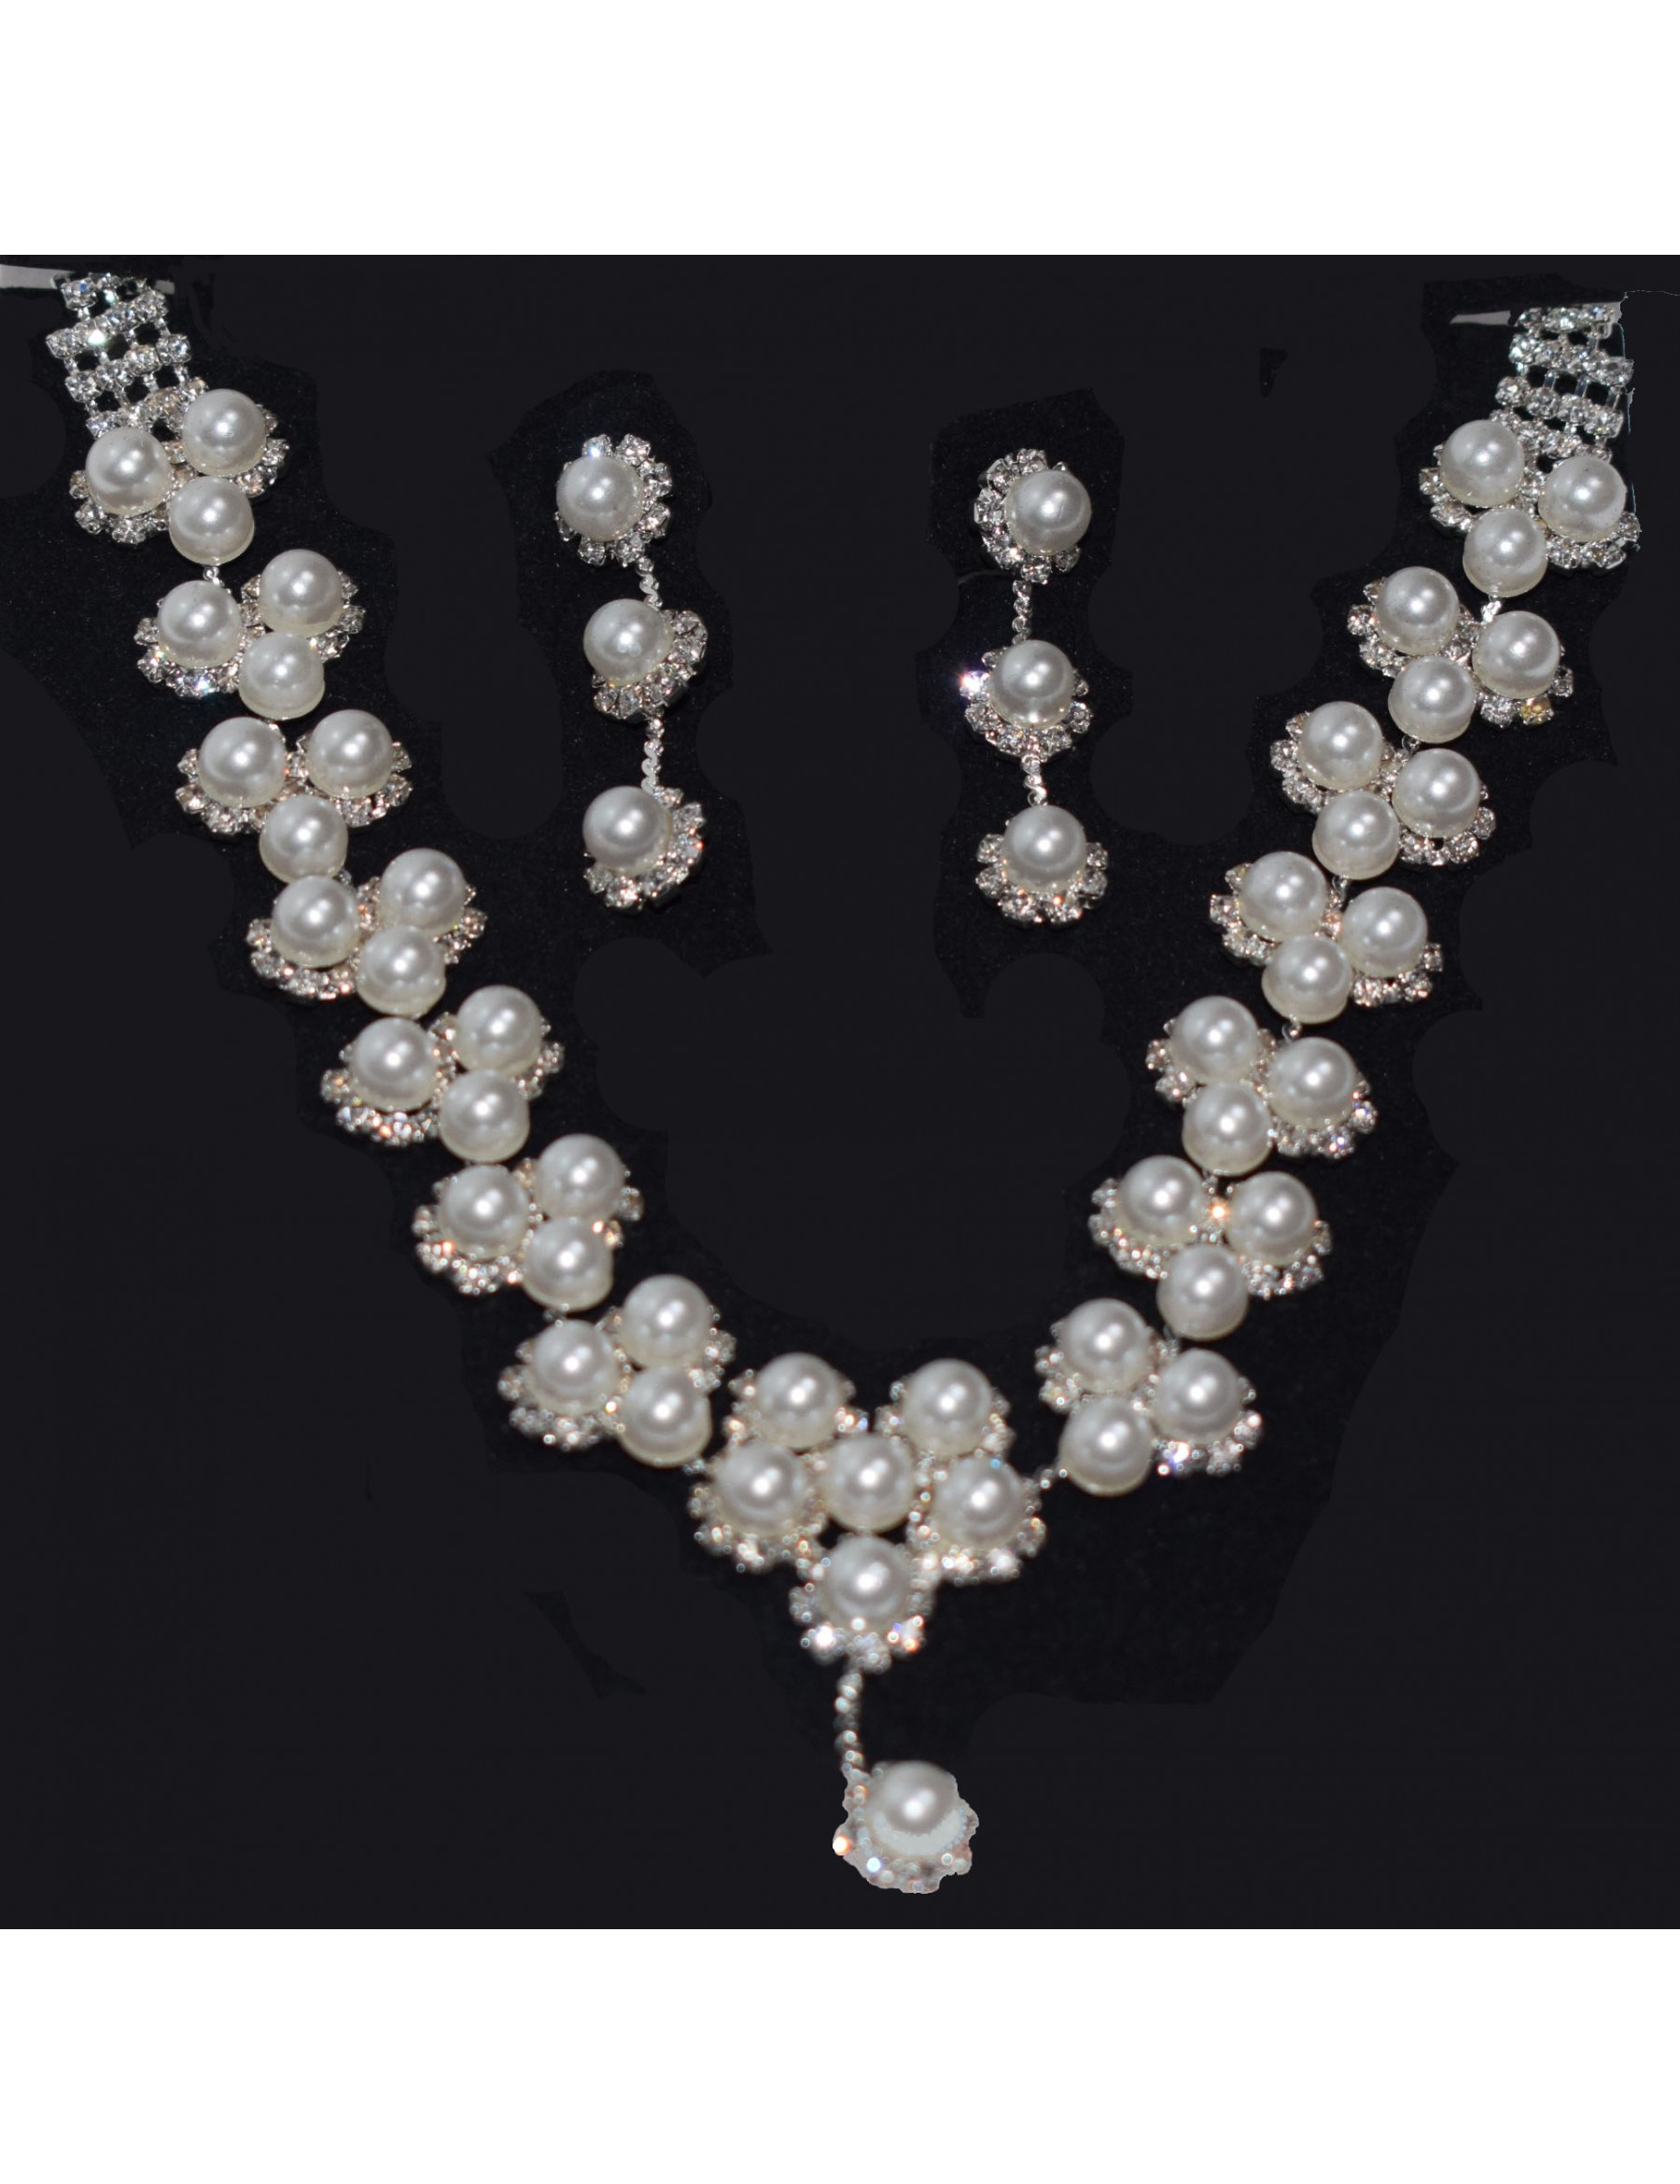 Rhinestone and Pearl Necklace and Earring set